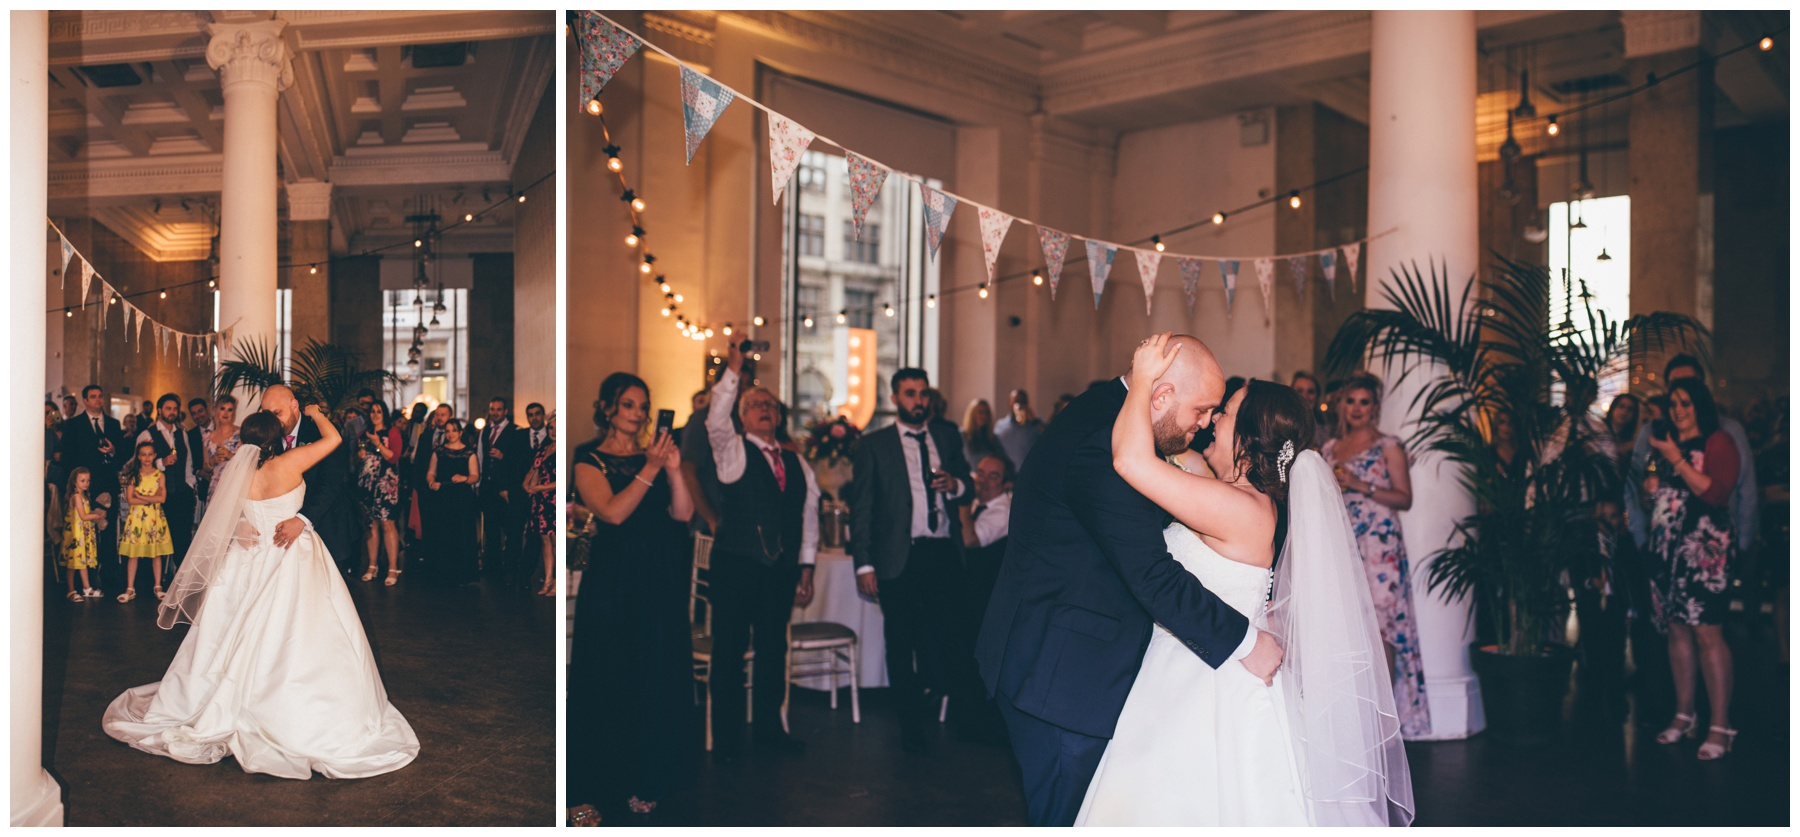 First Dance at Oh Me Oh My in Liverpool.